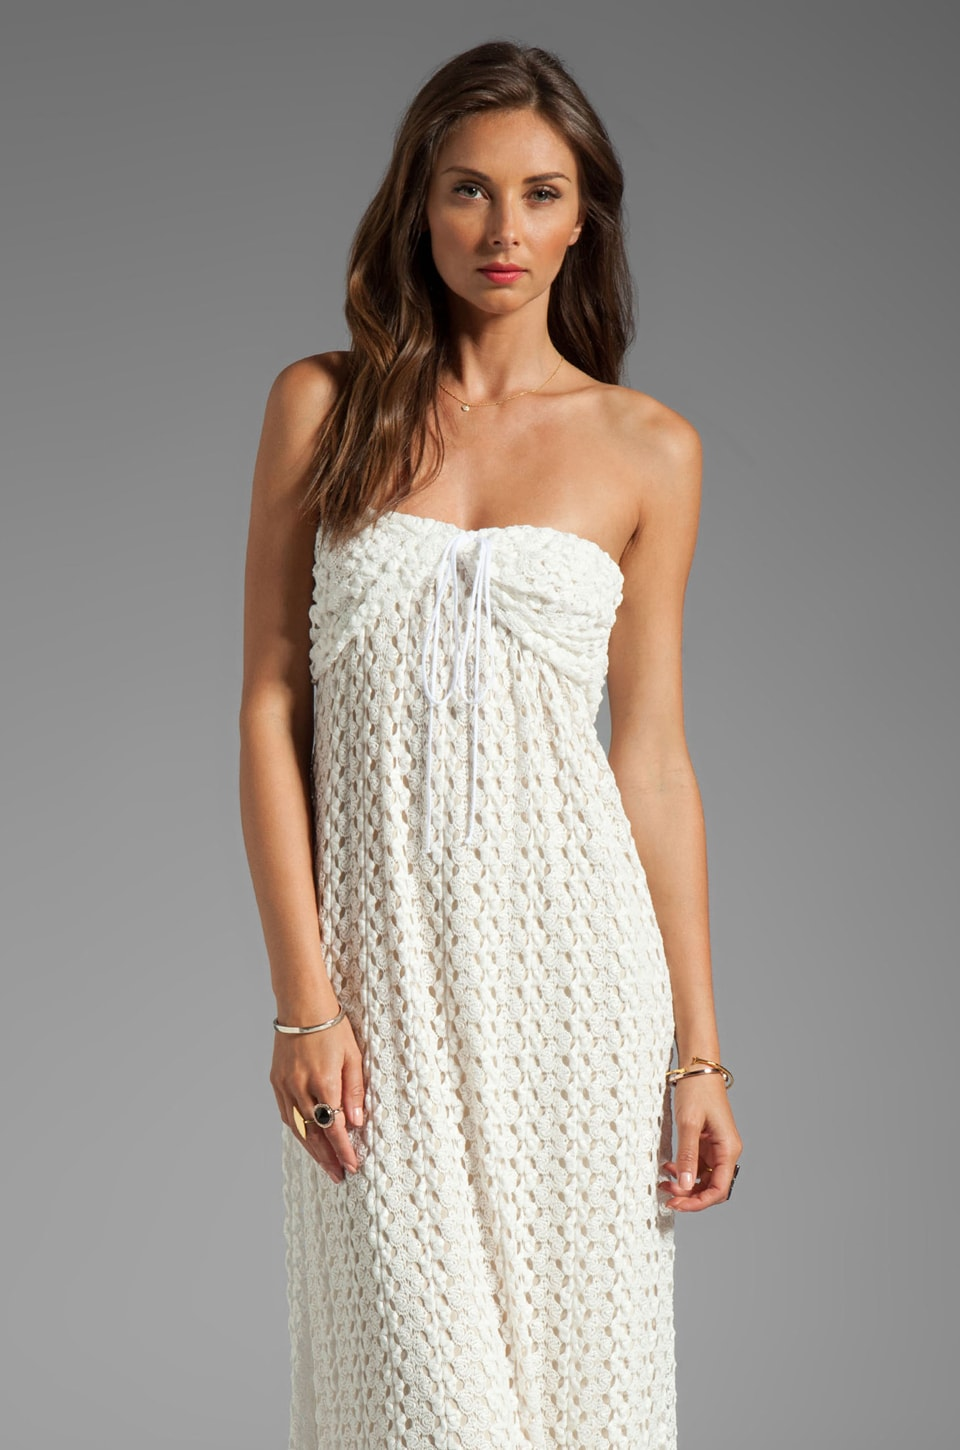 T-Bags LosAngeles Strapless Crochet Maxi Dress in Ivory